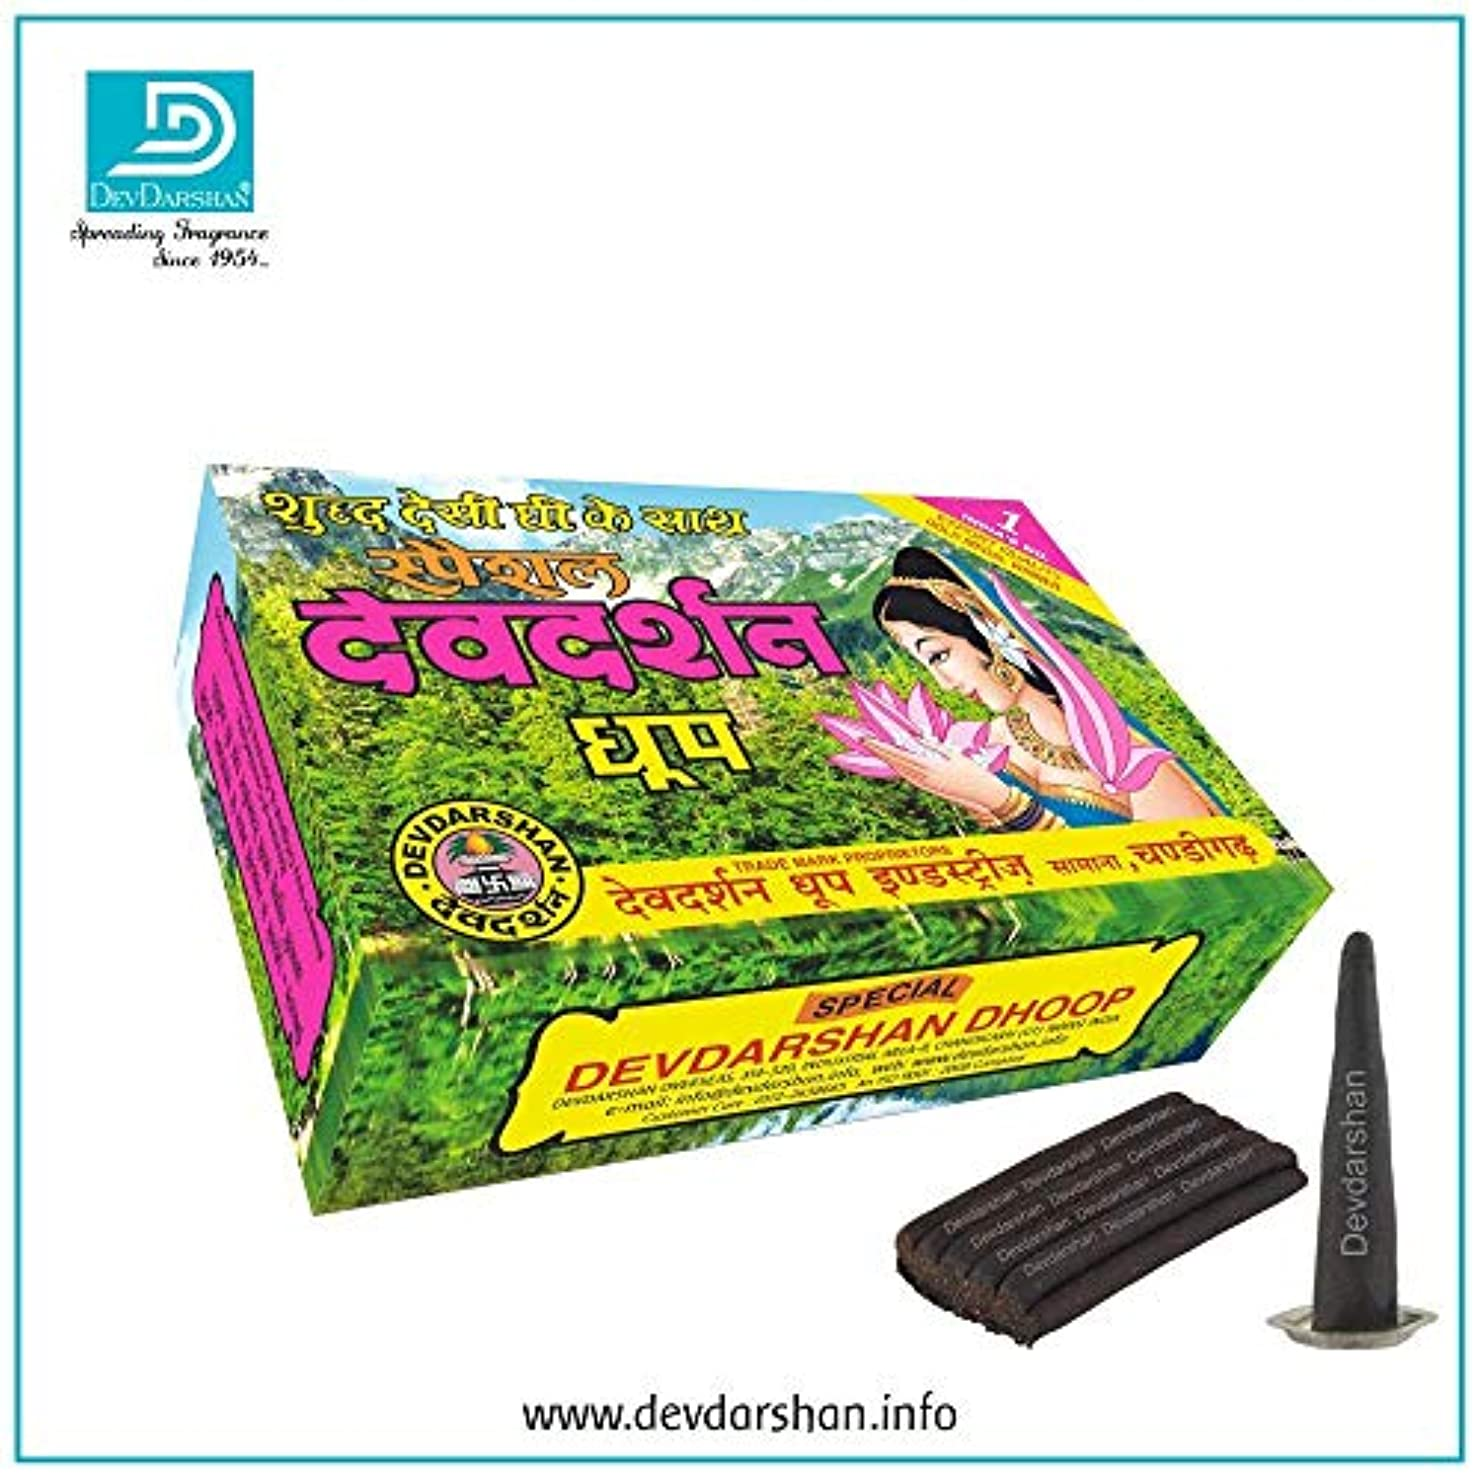 植生歯痛ペインティングDevdarshan Special Dhoop Large, 50g in Each Unit (Pack of 12 Units)